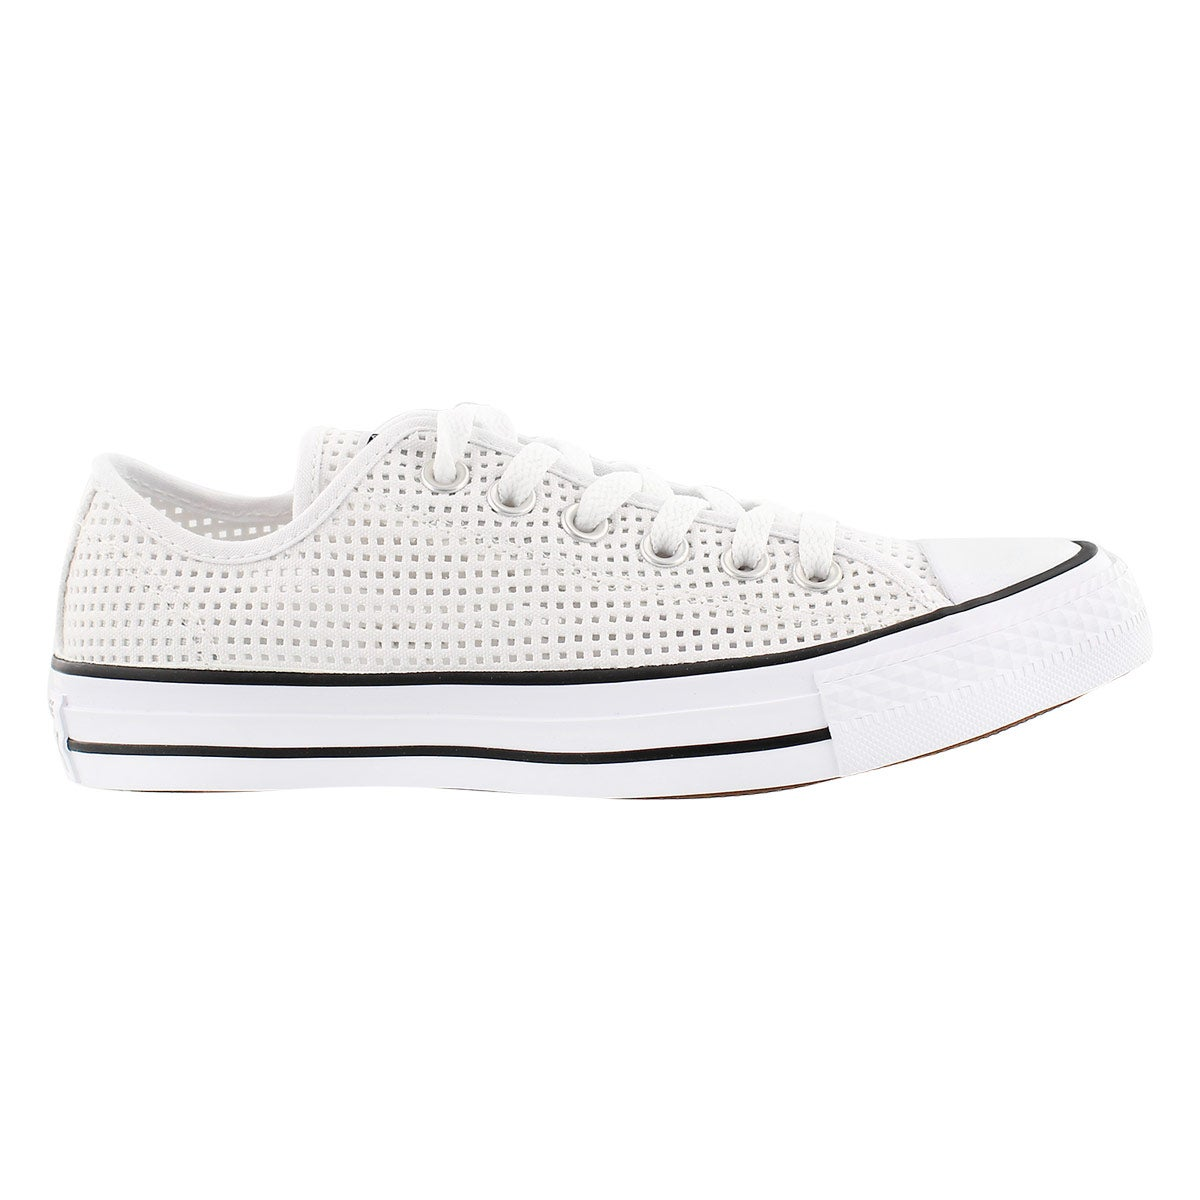 Lds CT Perfed Canvas wht/blk oxford